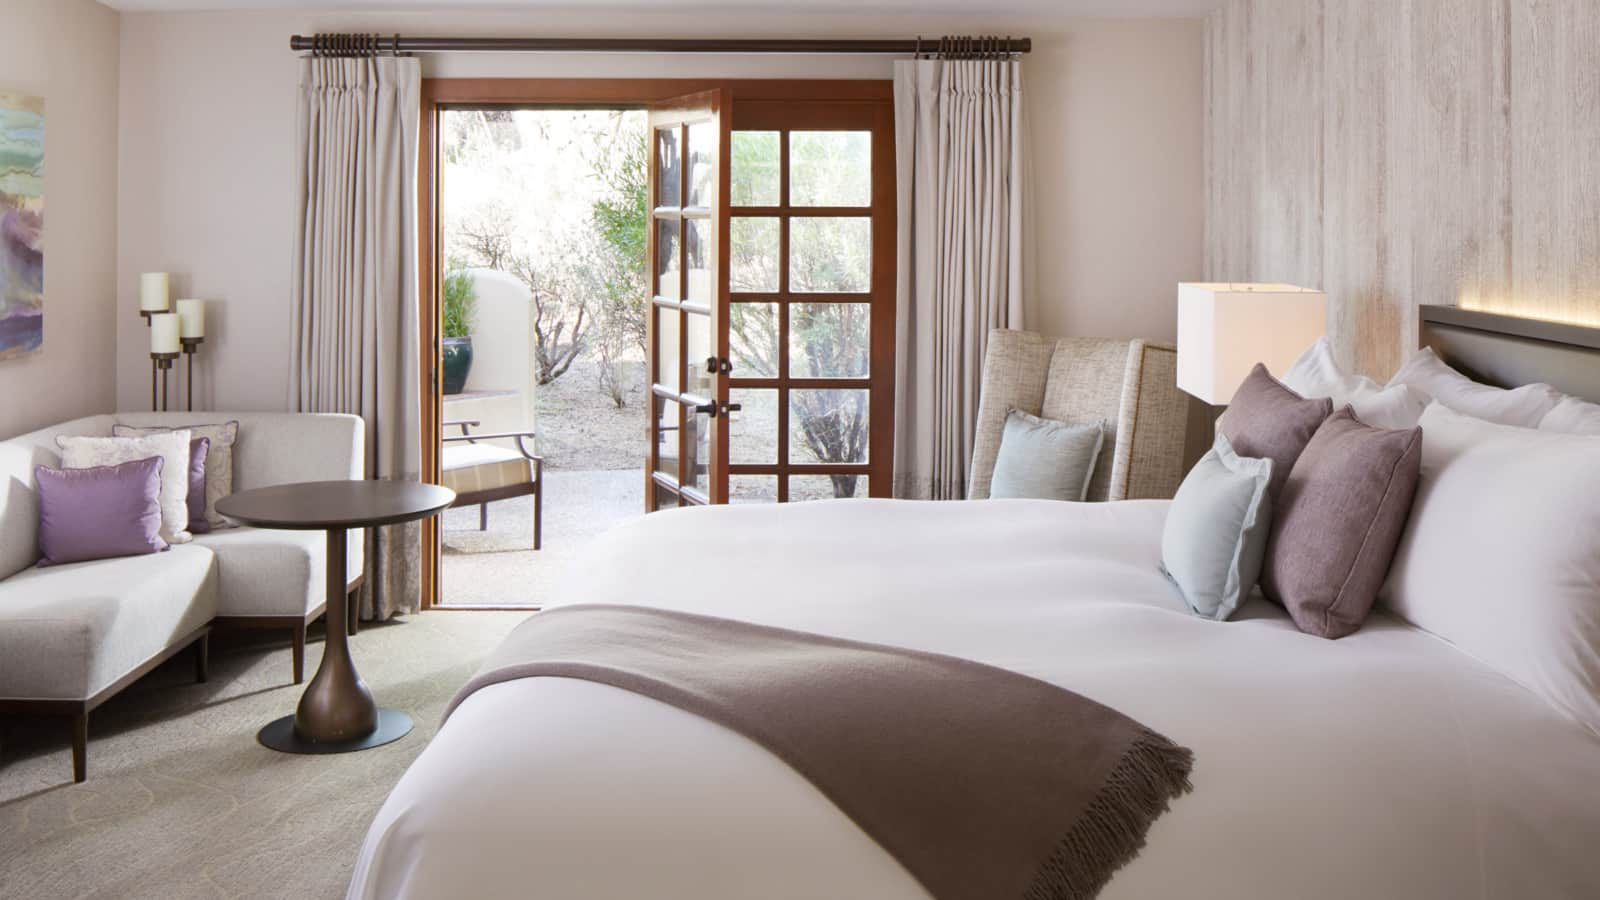 Save 50% on Award Nights at Miraval Arizona